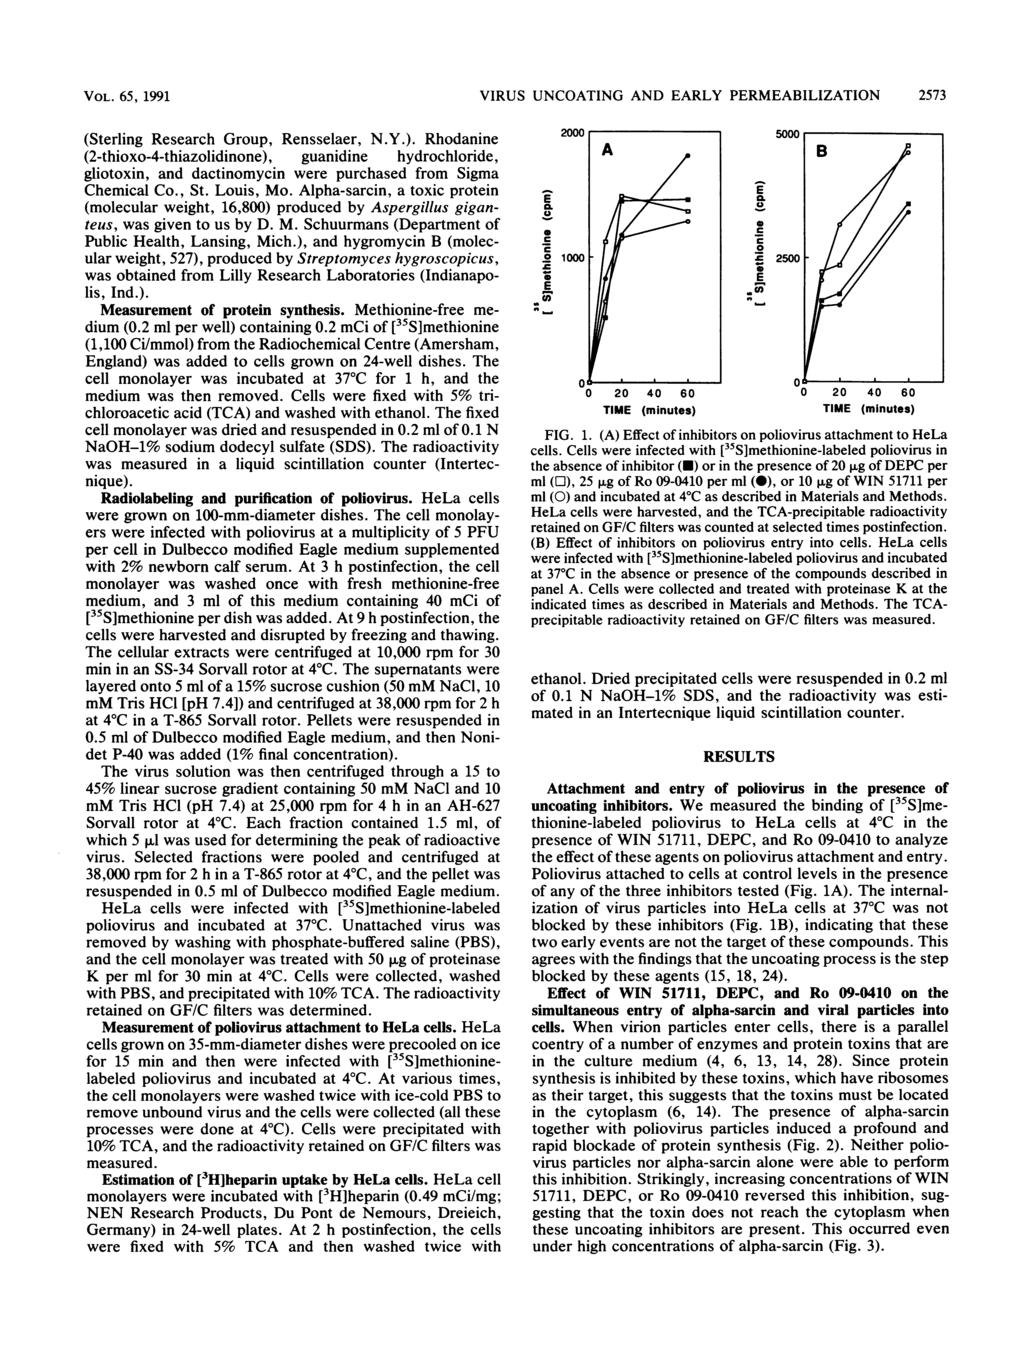 VOL. 65, 1991 VIRUS UNCOATING AND ARLY PRMABILIZATION 2573 (Sterling Research Group, Rensselaer, N.Y.).